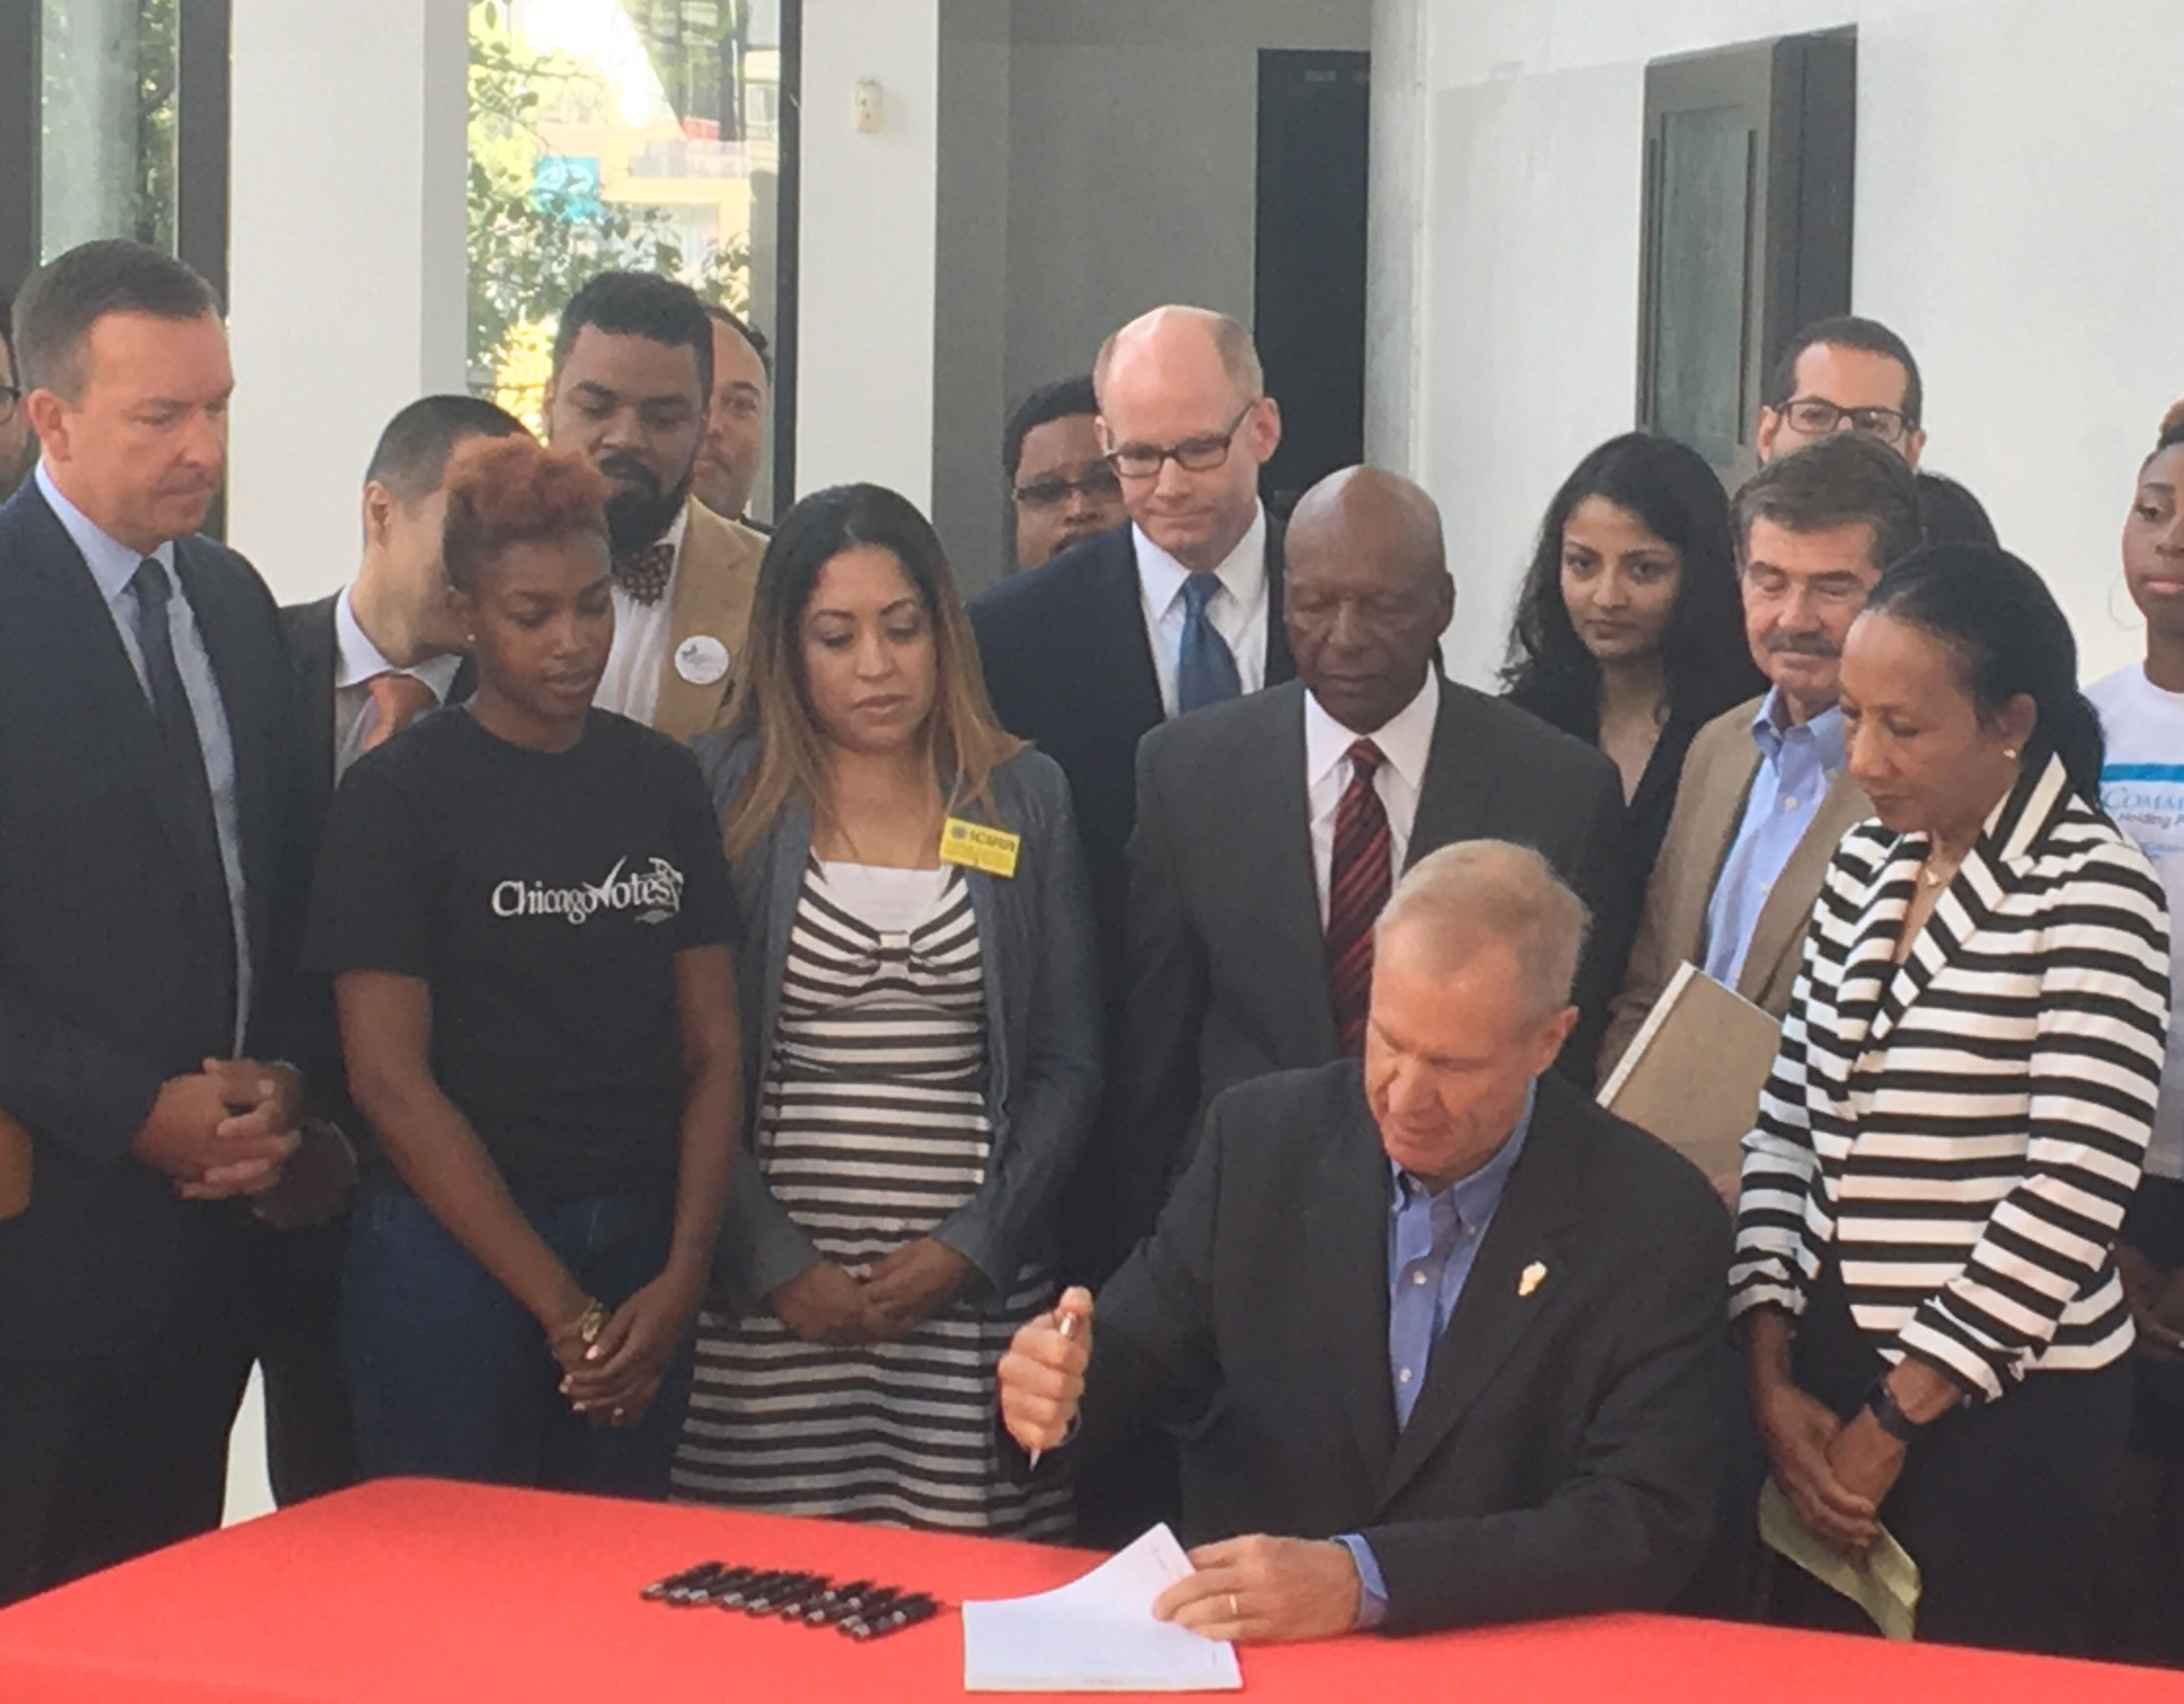 Governor signs automatic voter registration